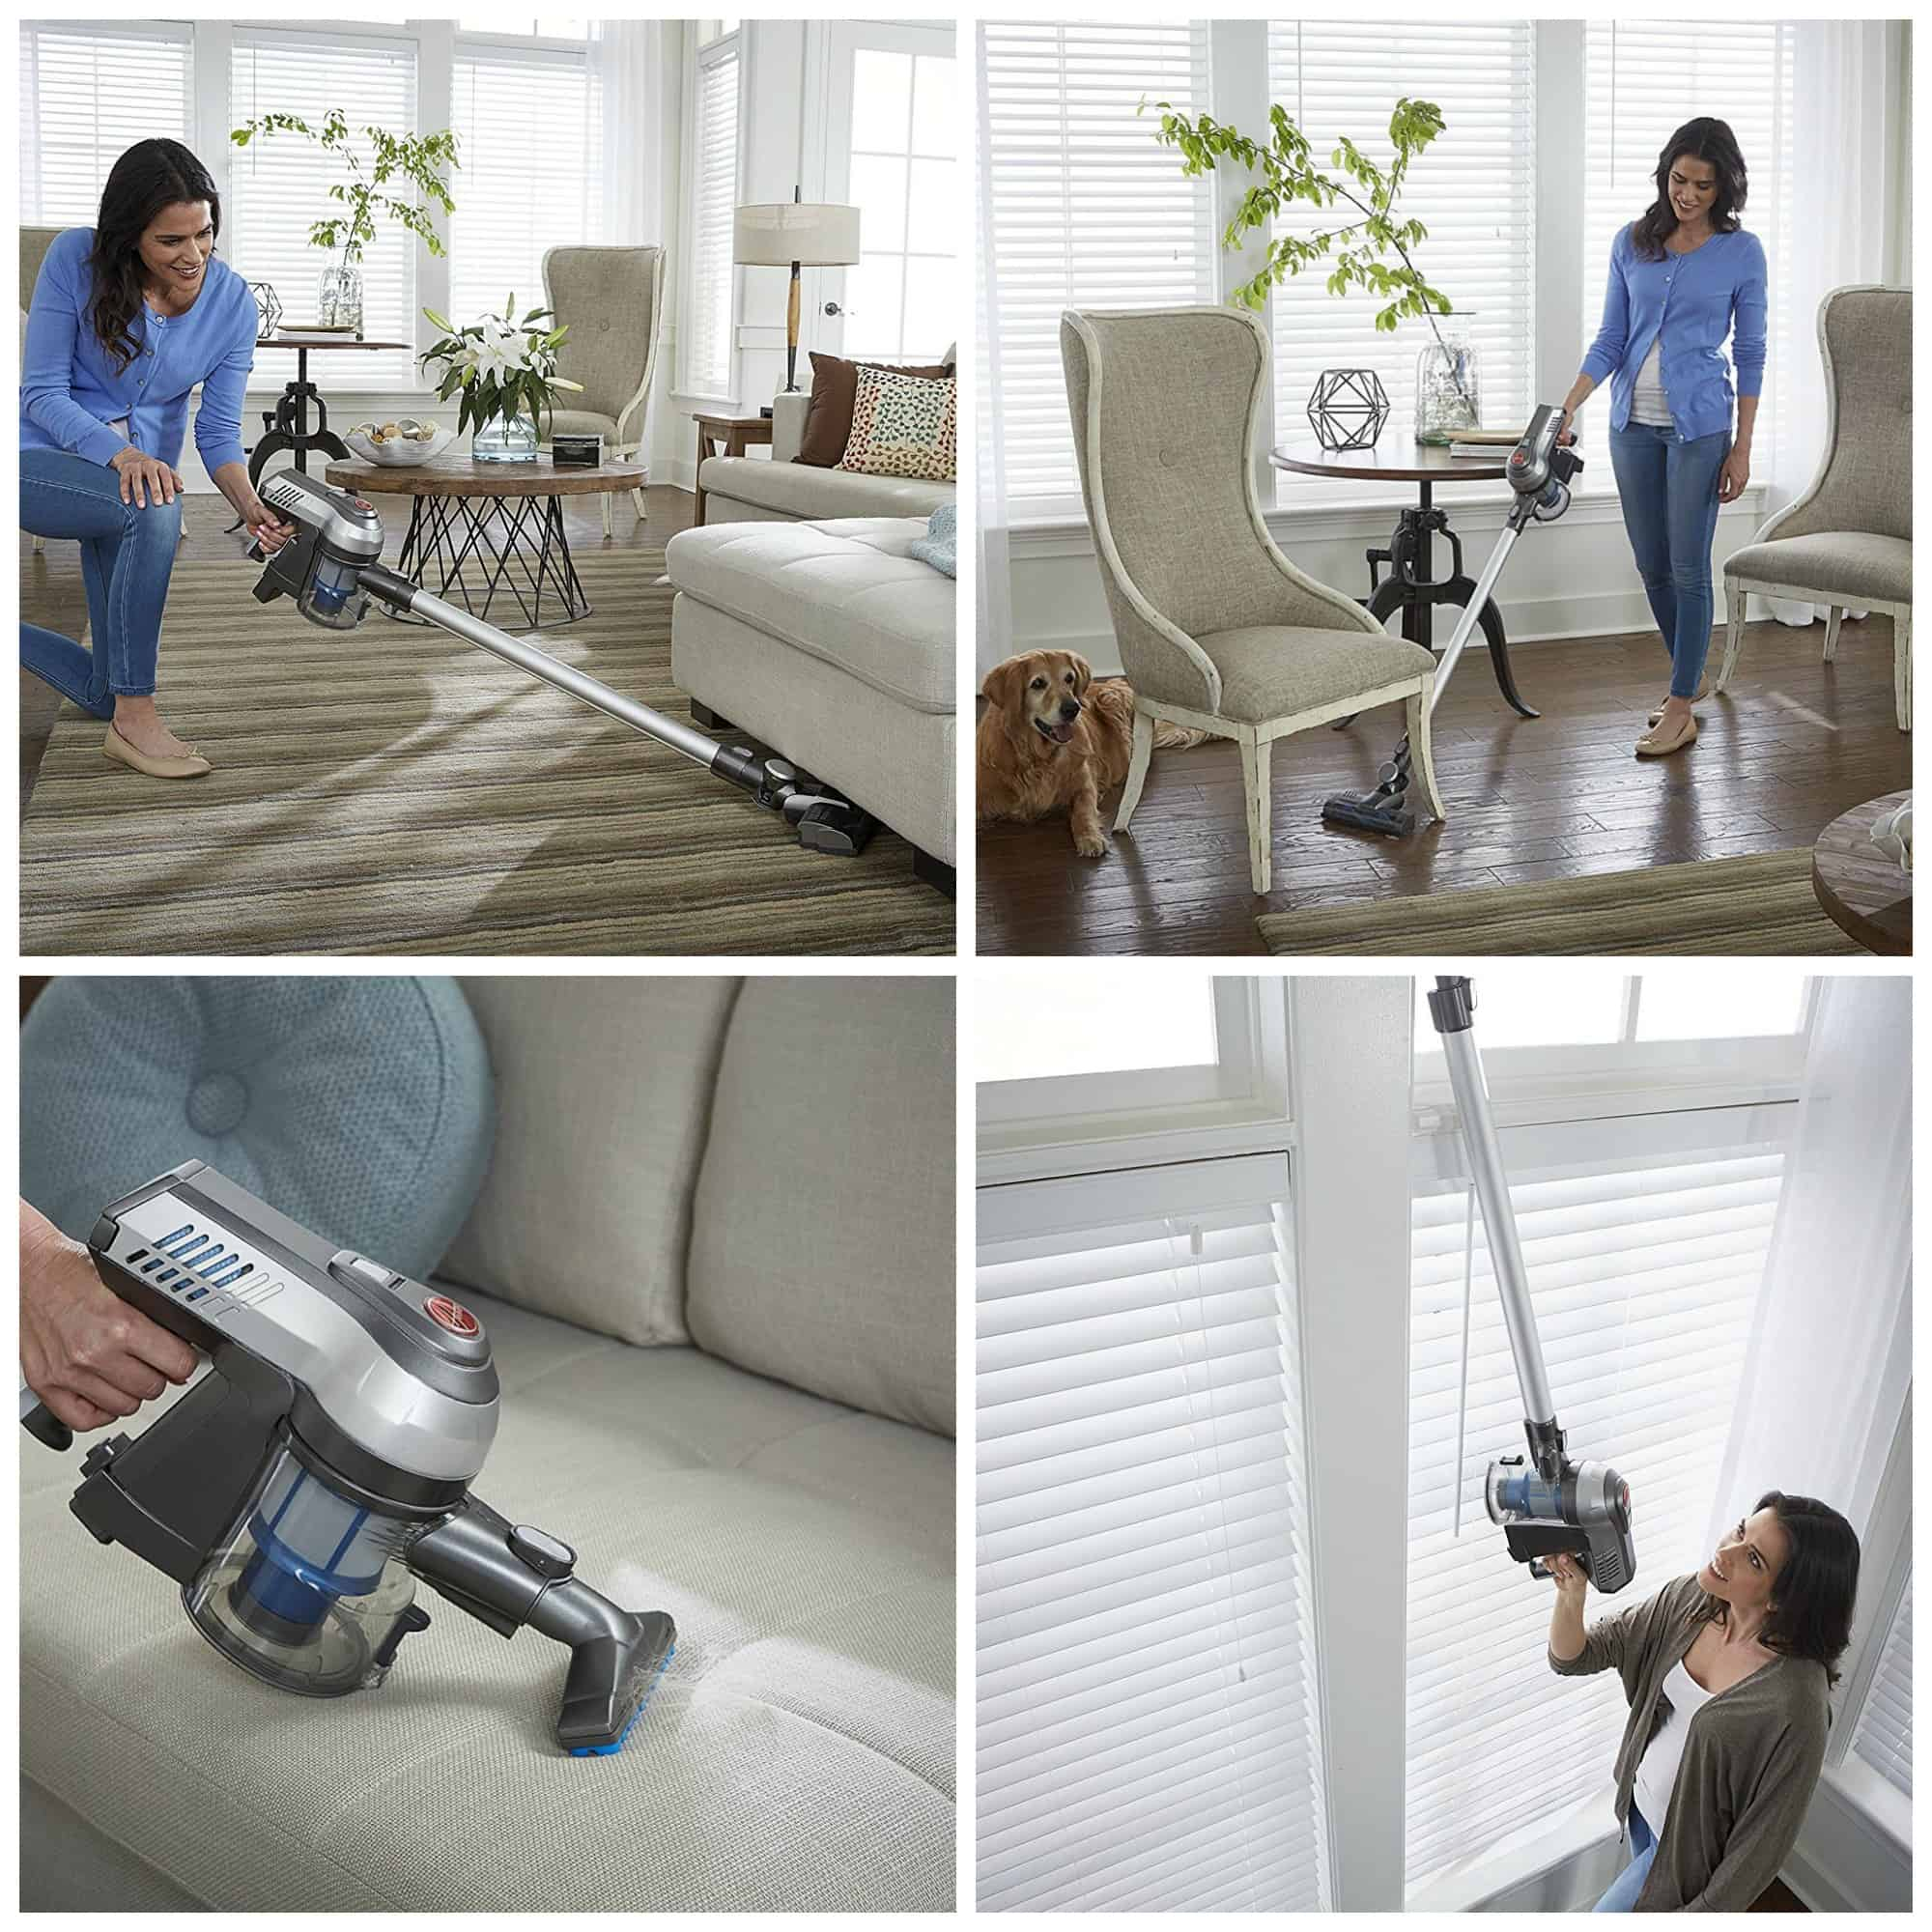 Hoover Cruise Cordless Lightweight Stick Vacuum Cleaner